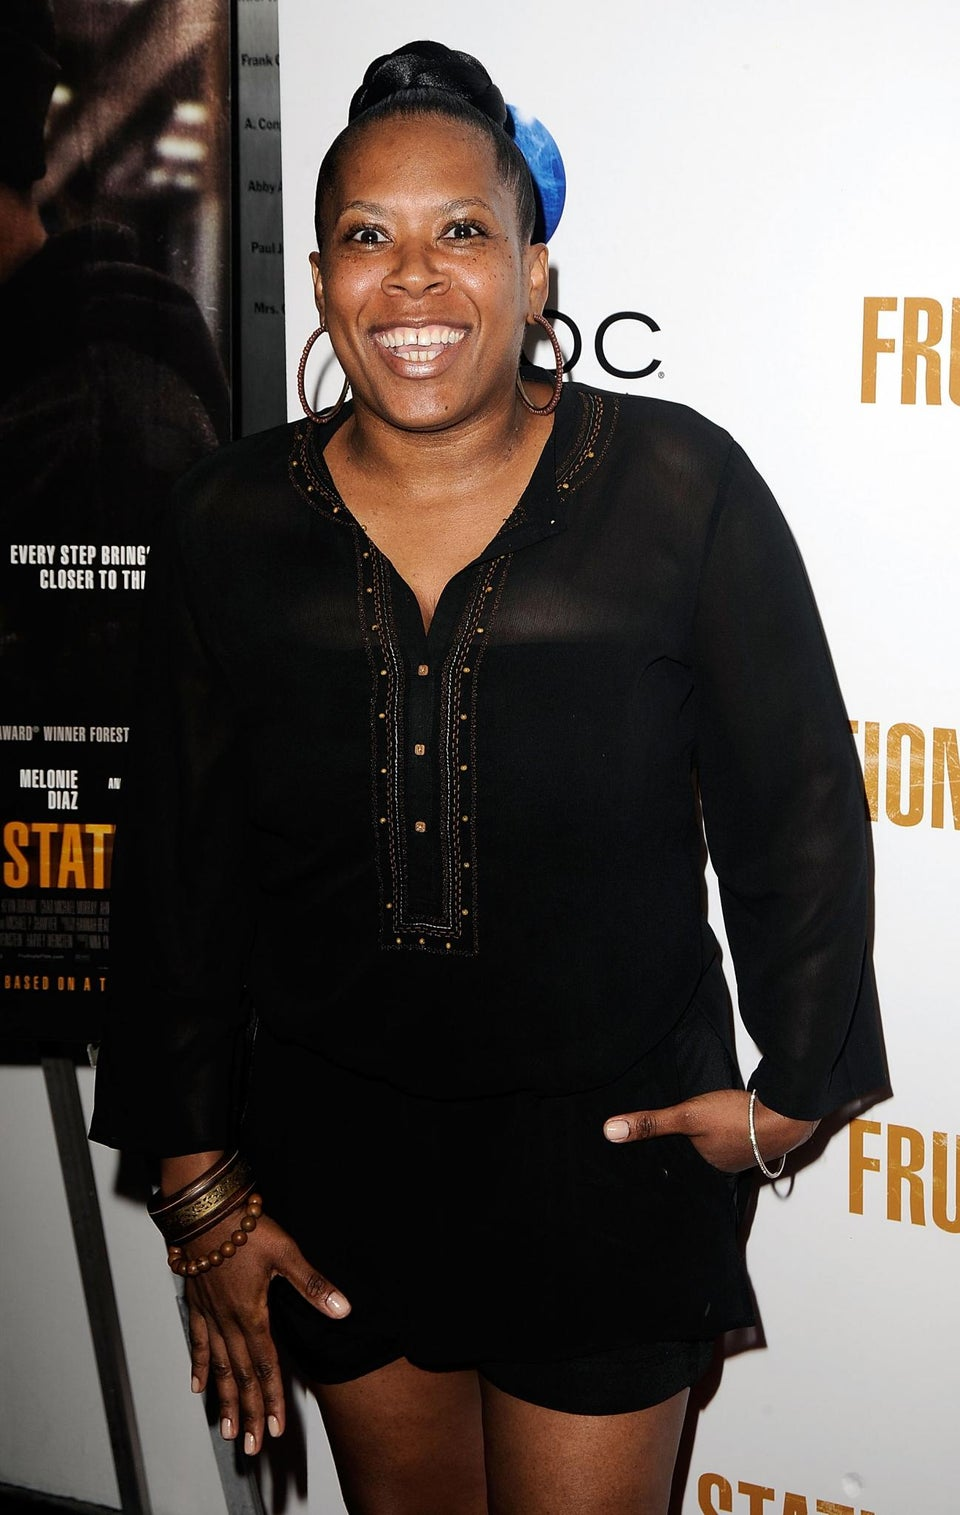 Heather B Lands Her Own Show on Sirius XM's FLY